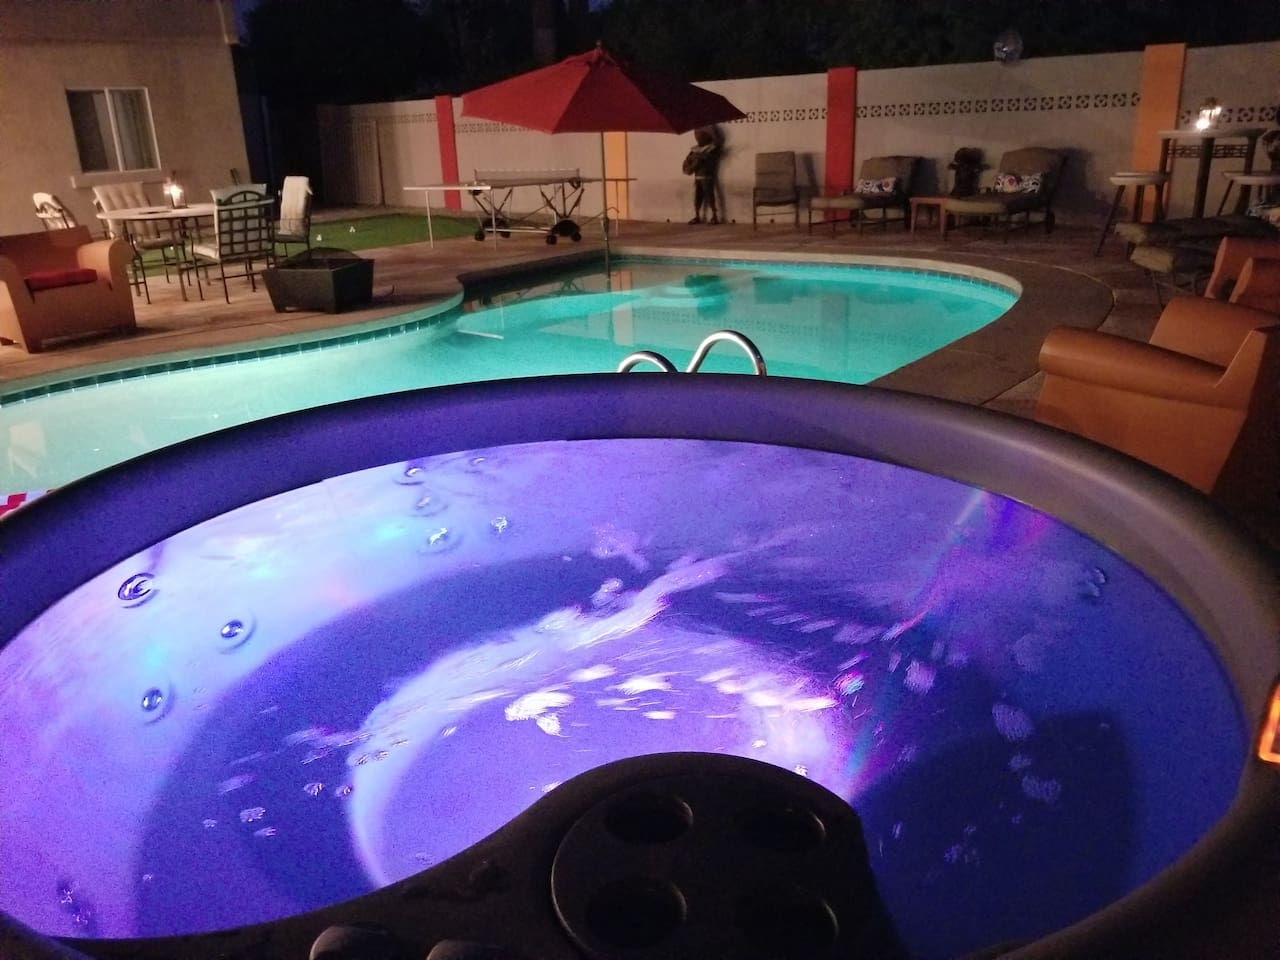 Nightime relaxing in the heated pool and new hot tub, Old Town Scottsdales only true 8 bed, 4 bath sleeps 20 easily